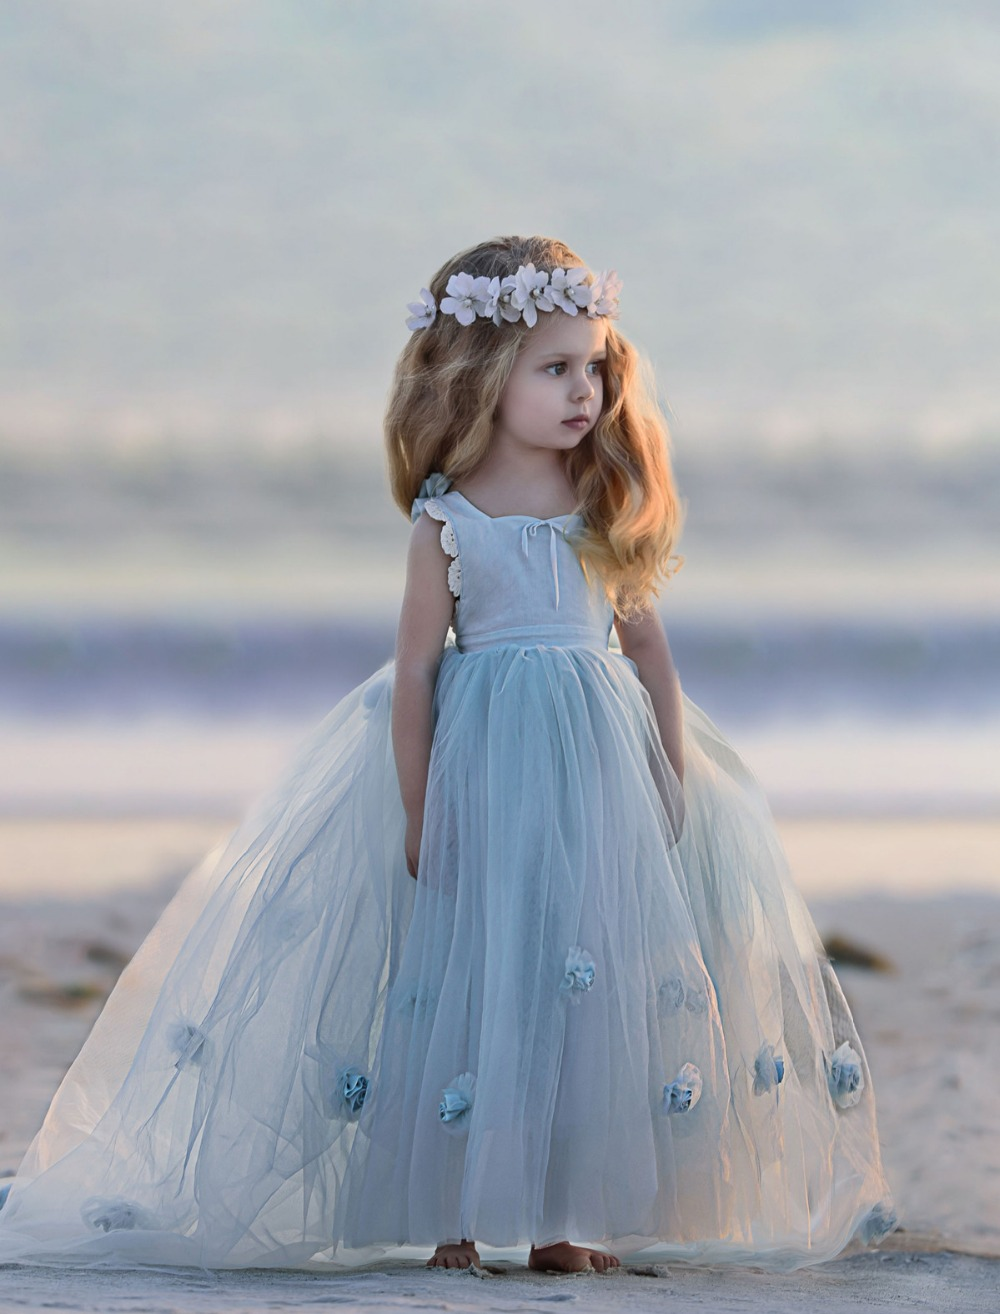 Adorable Mist Tutu Tulle Baby Flower Girl Dress Sleeveless Hollow Back Puffy Ball Gown with Handemade Flowers 0-12 Years Old